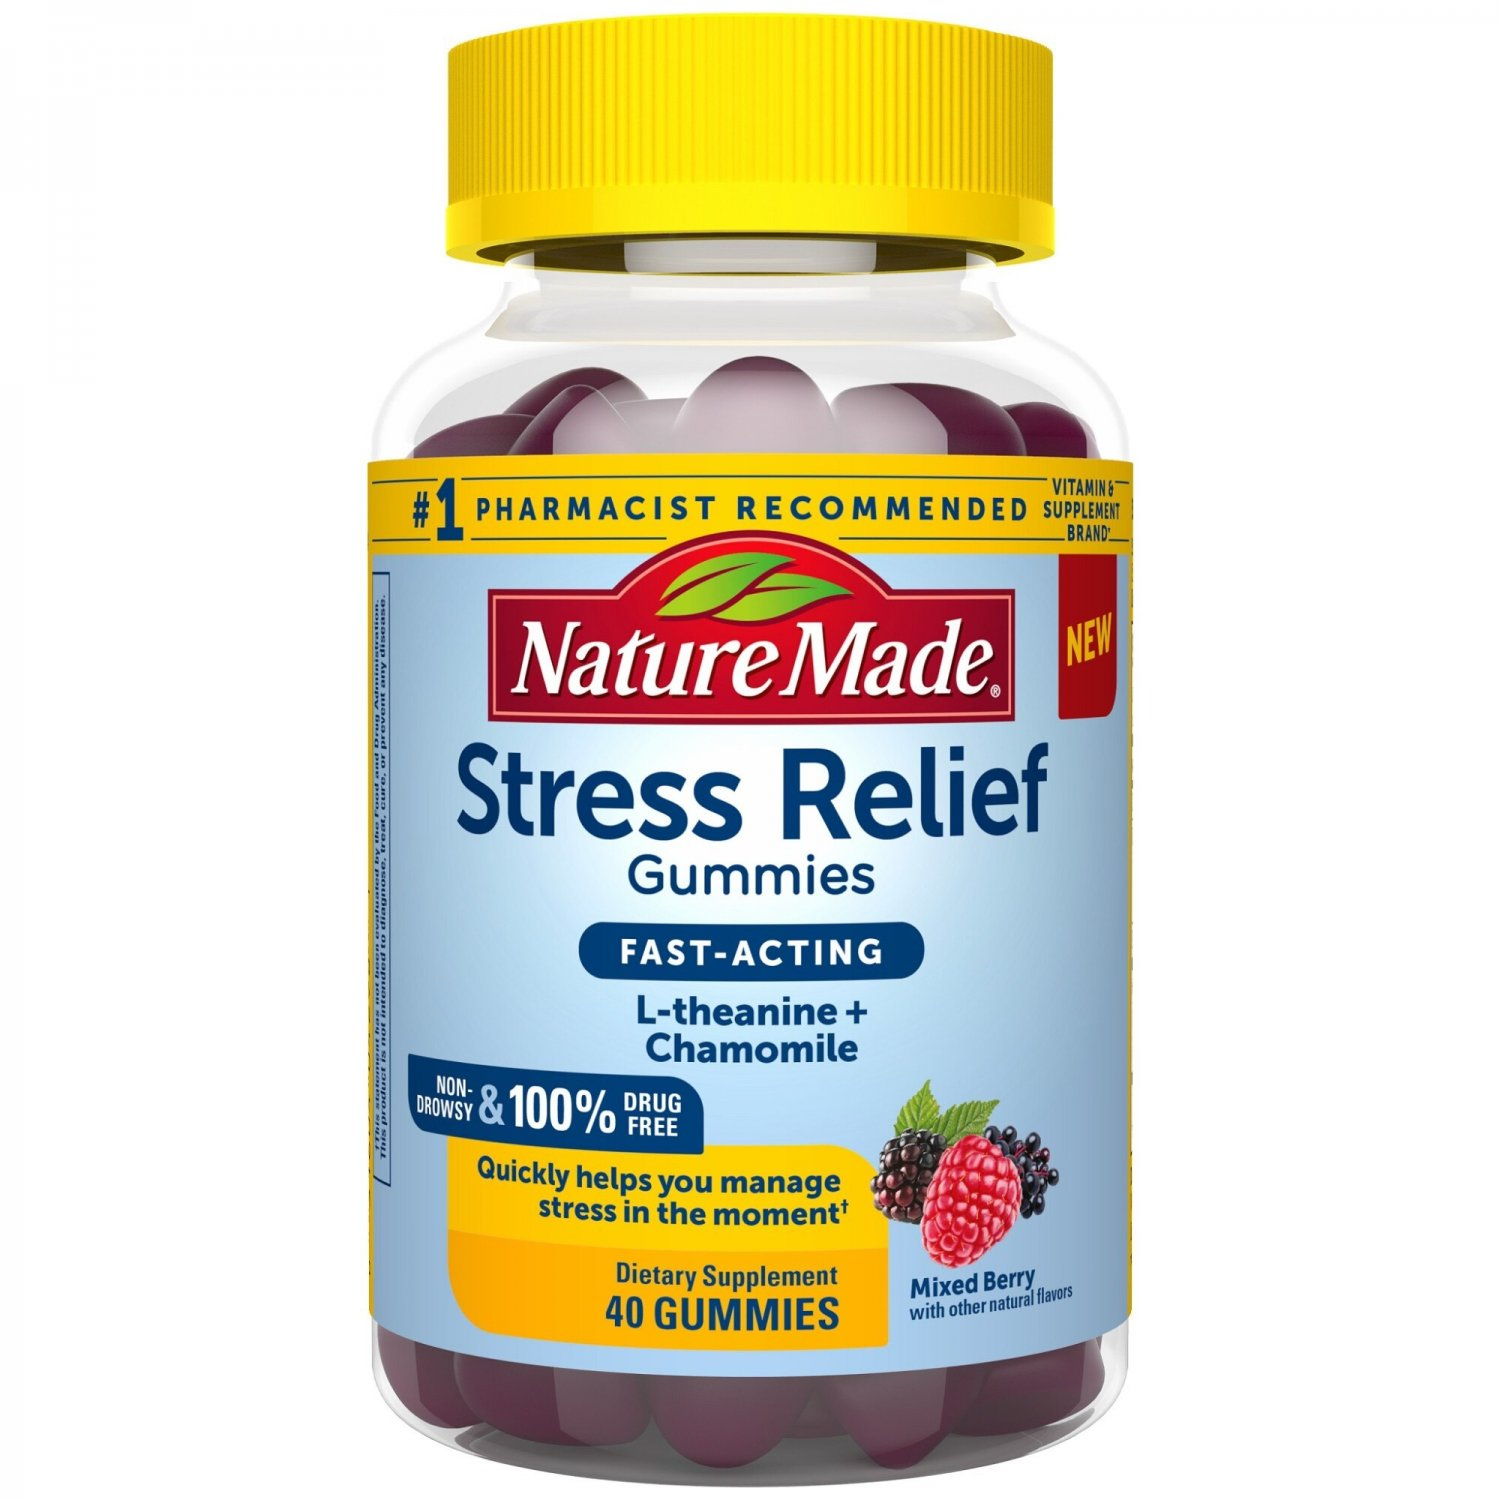 Nature Made Stress Relief L-theanine + Chamomile Fast Acting Gummies - 40 Count